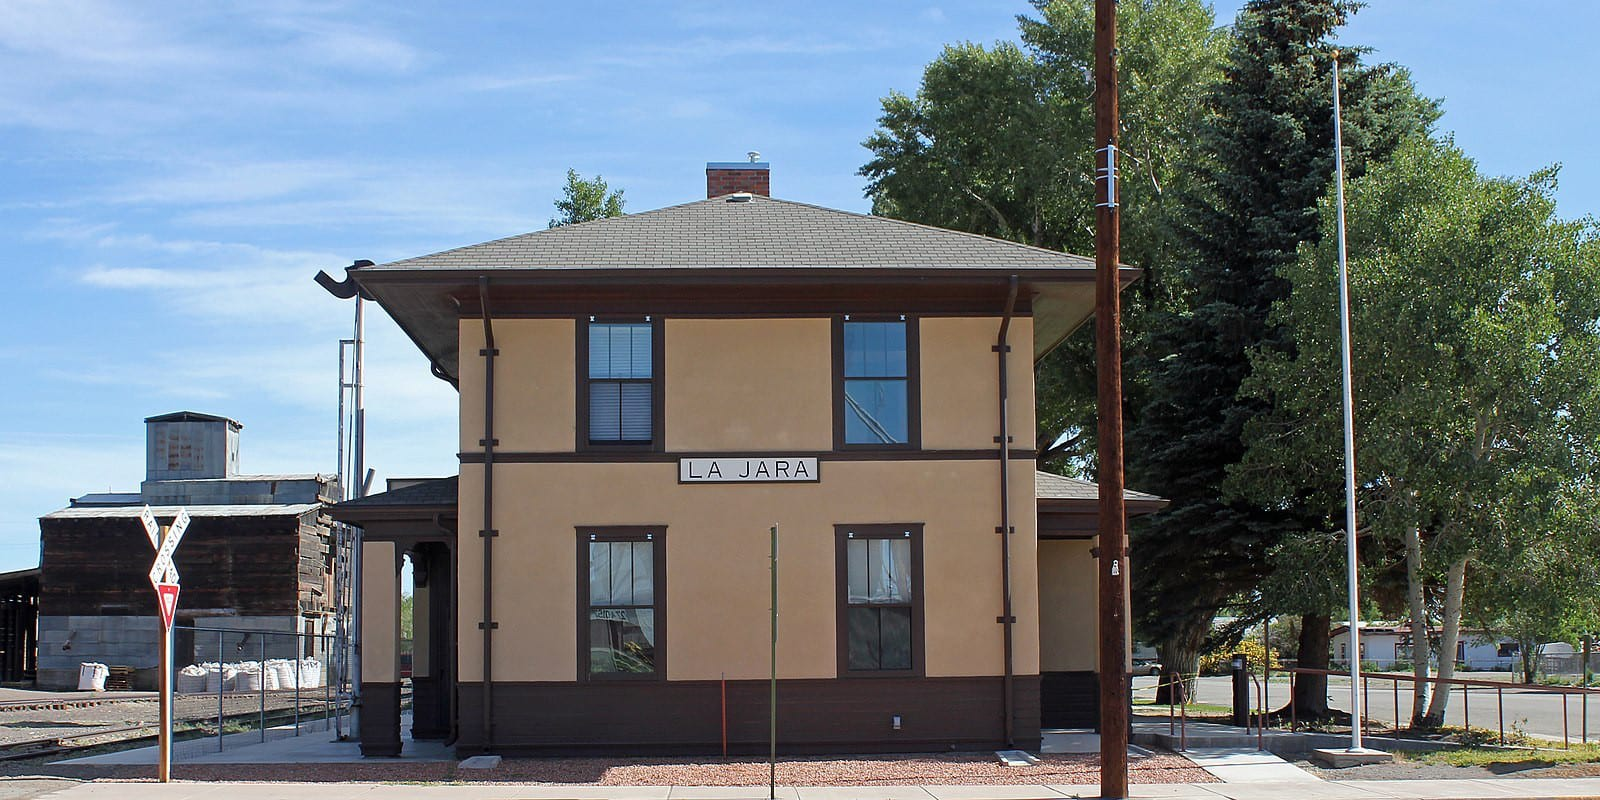 La Jara Colorado Train Depot Town Hall